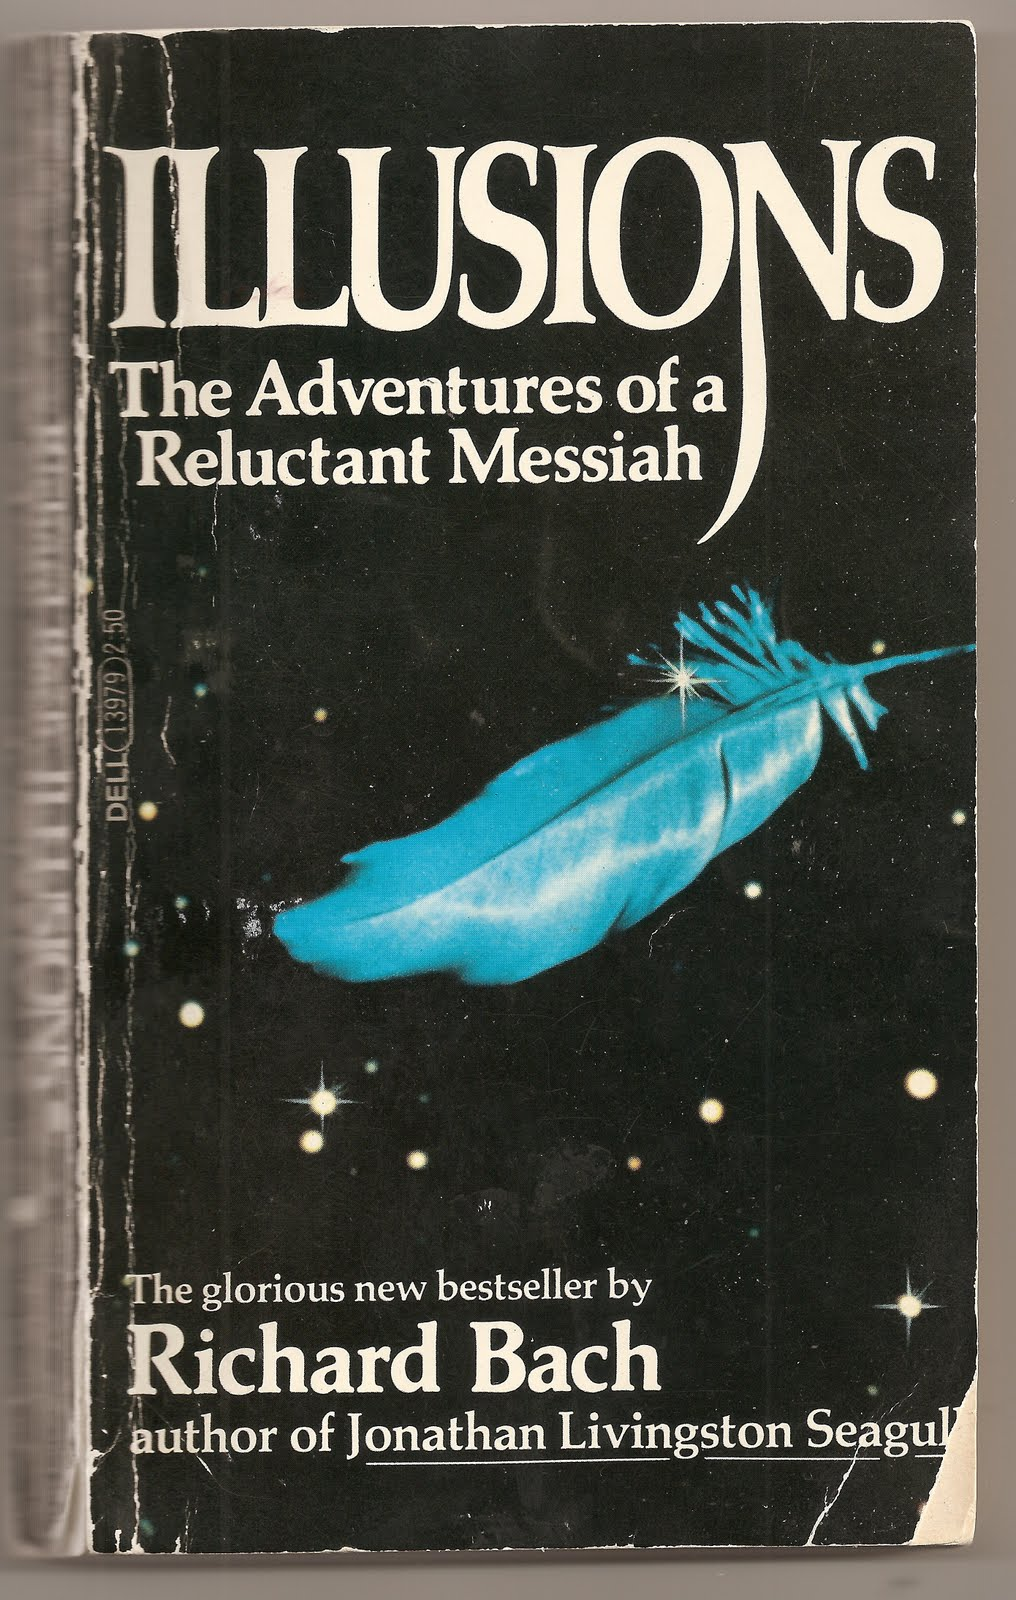 illusions by richard bach Illusions: the adventures of a reluctant messiah summary & study guide richard bach this study guide consists of approximately 37 pages of chapter summaries, quotes, character analysis, themes, and more - everything you need to sharpen your knowledge of illusions.